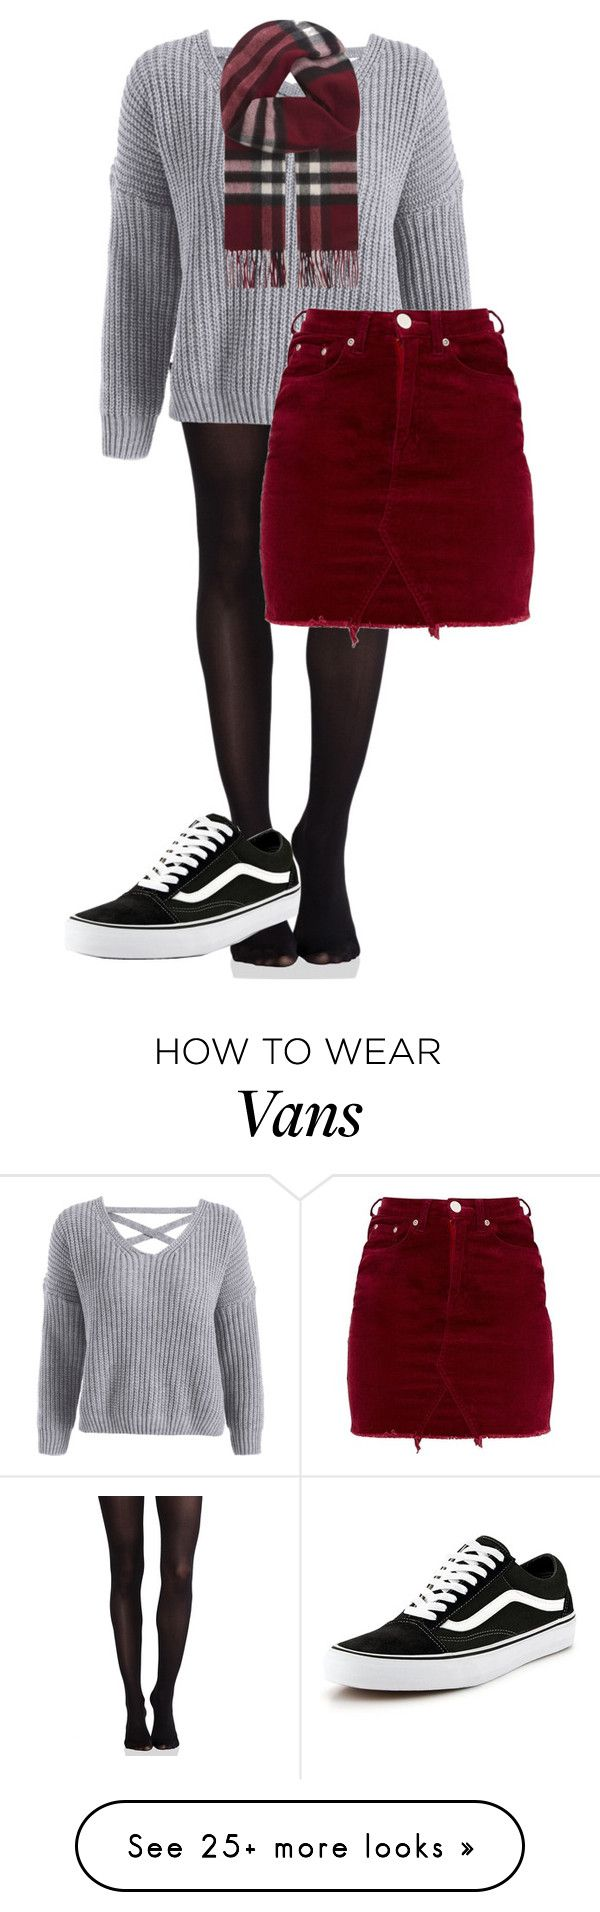 """Untitled #563"" by alaiza124 on Polyvore featuring SPANX, Burberry and Vans"